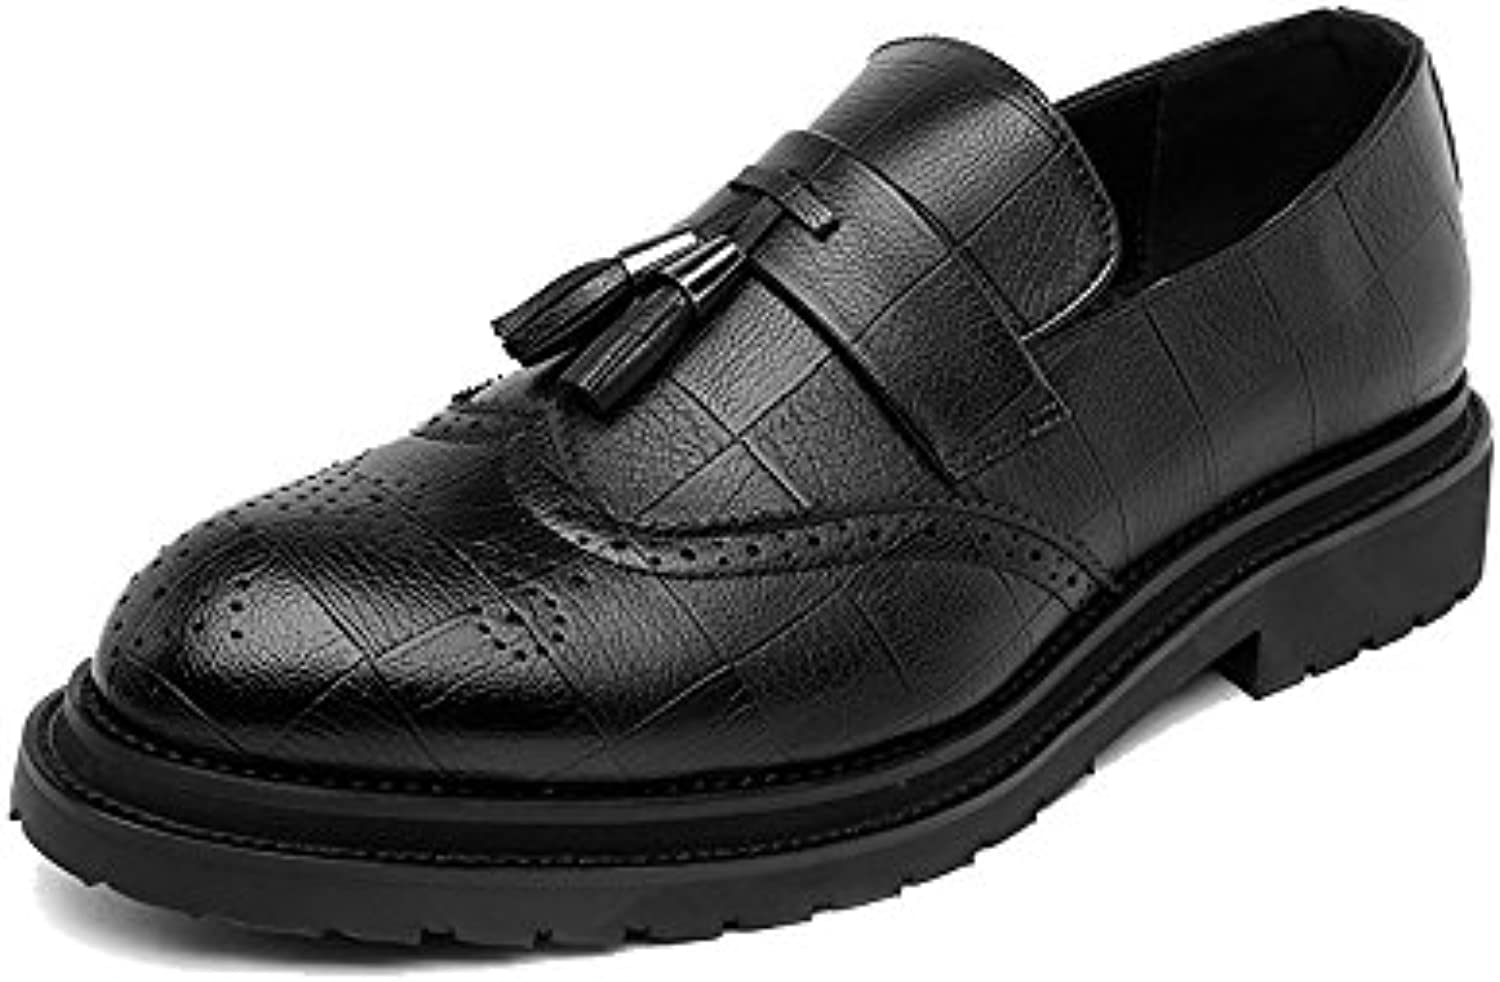 Männer Business Brogue Schuhe PU Leder oberen Quaste Anhaumlnger Slip on Wingtip Dekoration atmungsaktive Sohle Oxfords